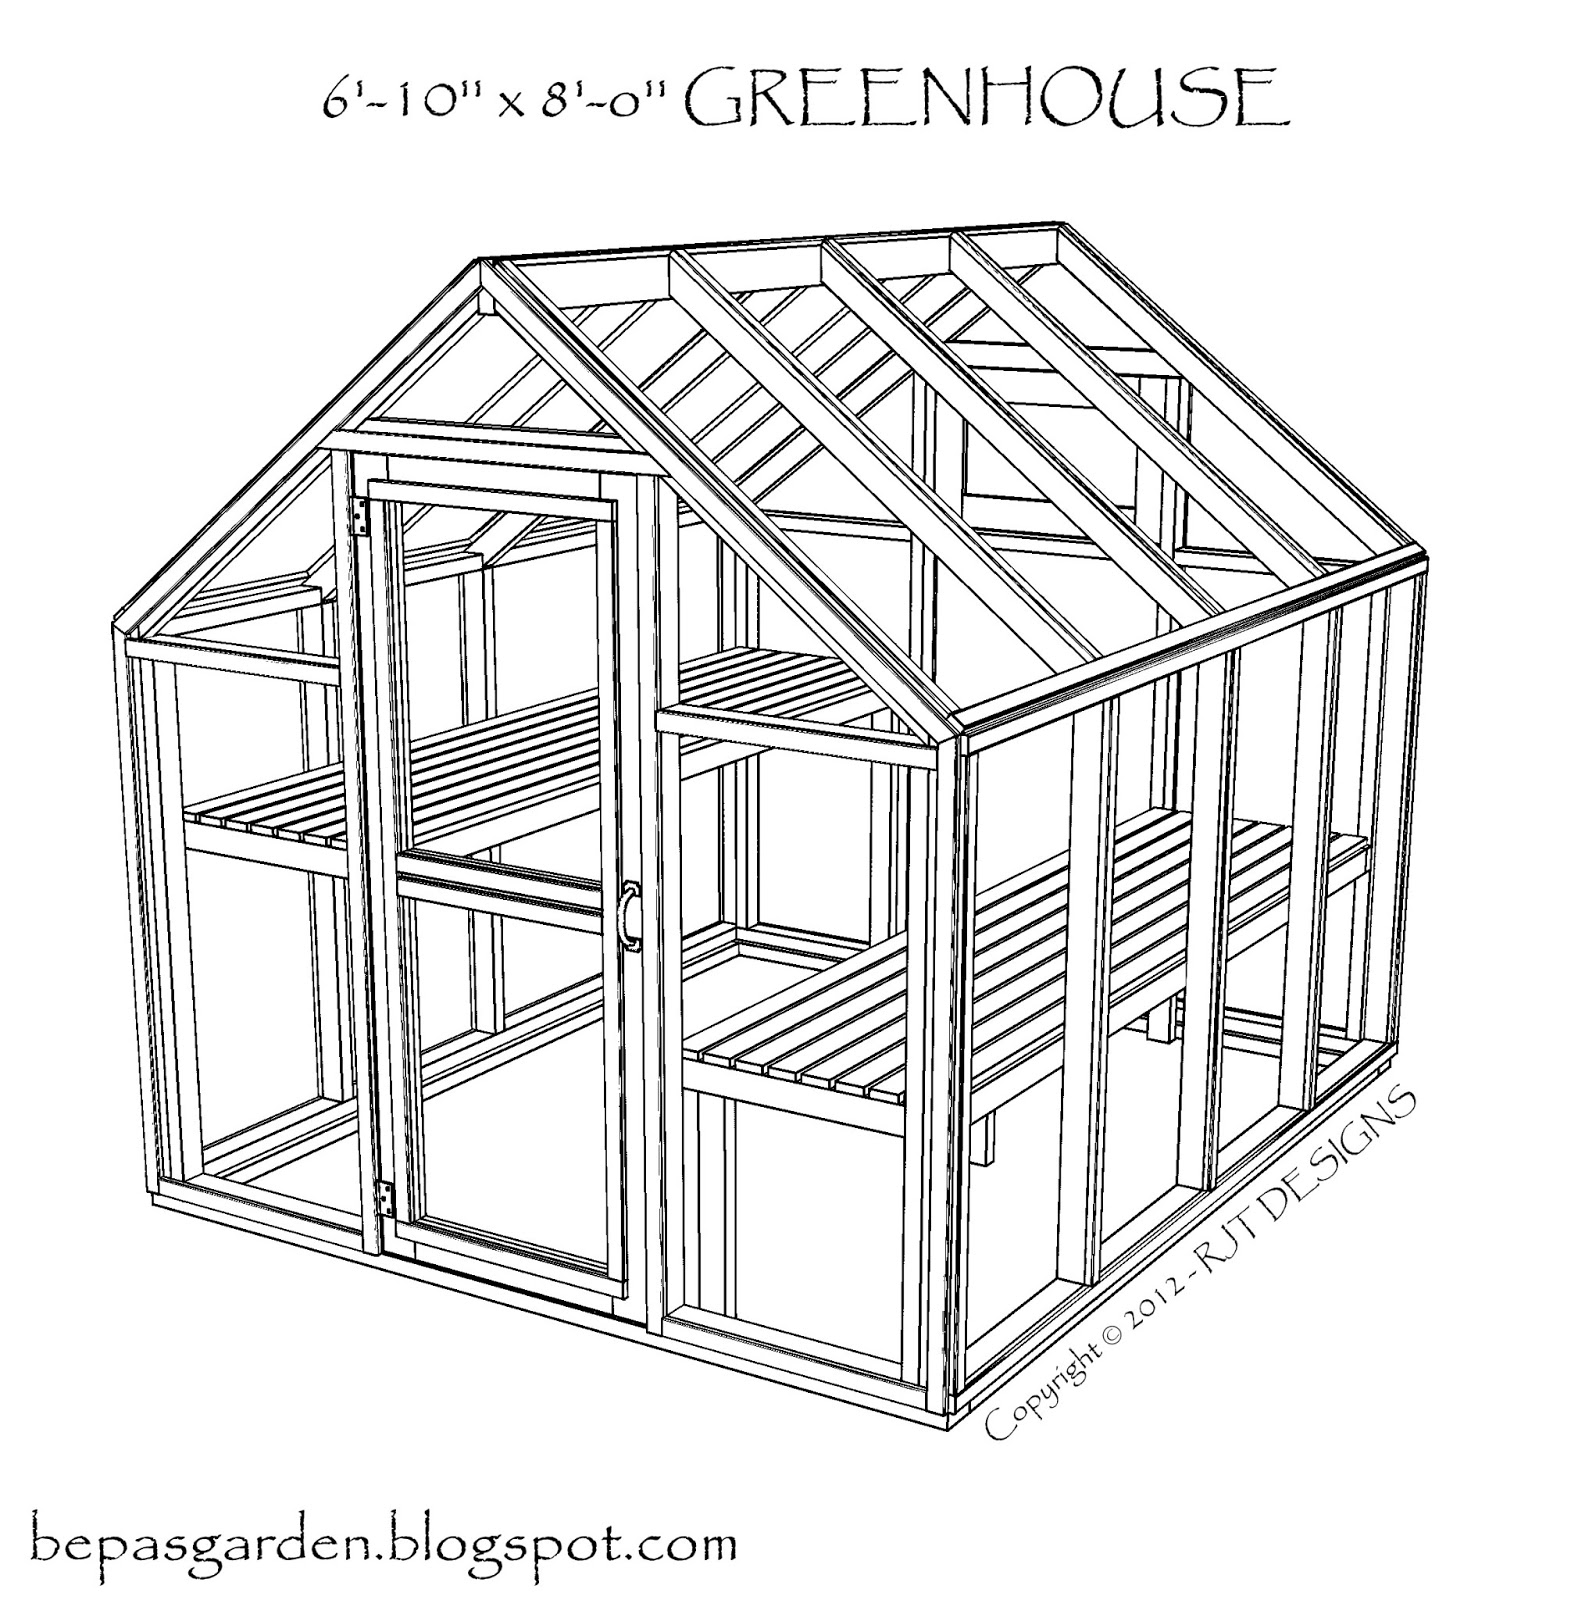 Bepa's Garden: PDF Version of Greenhouse Plans now available!